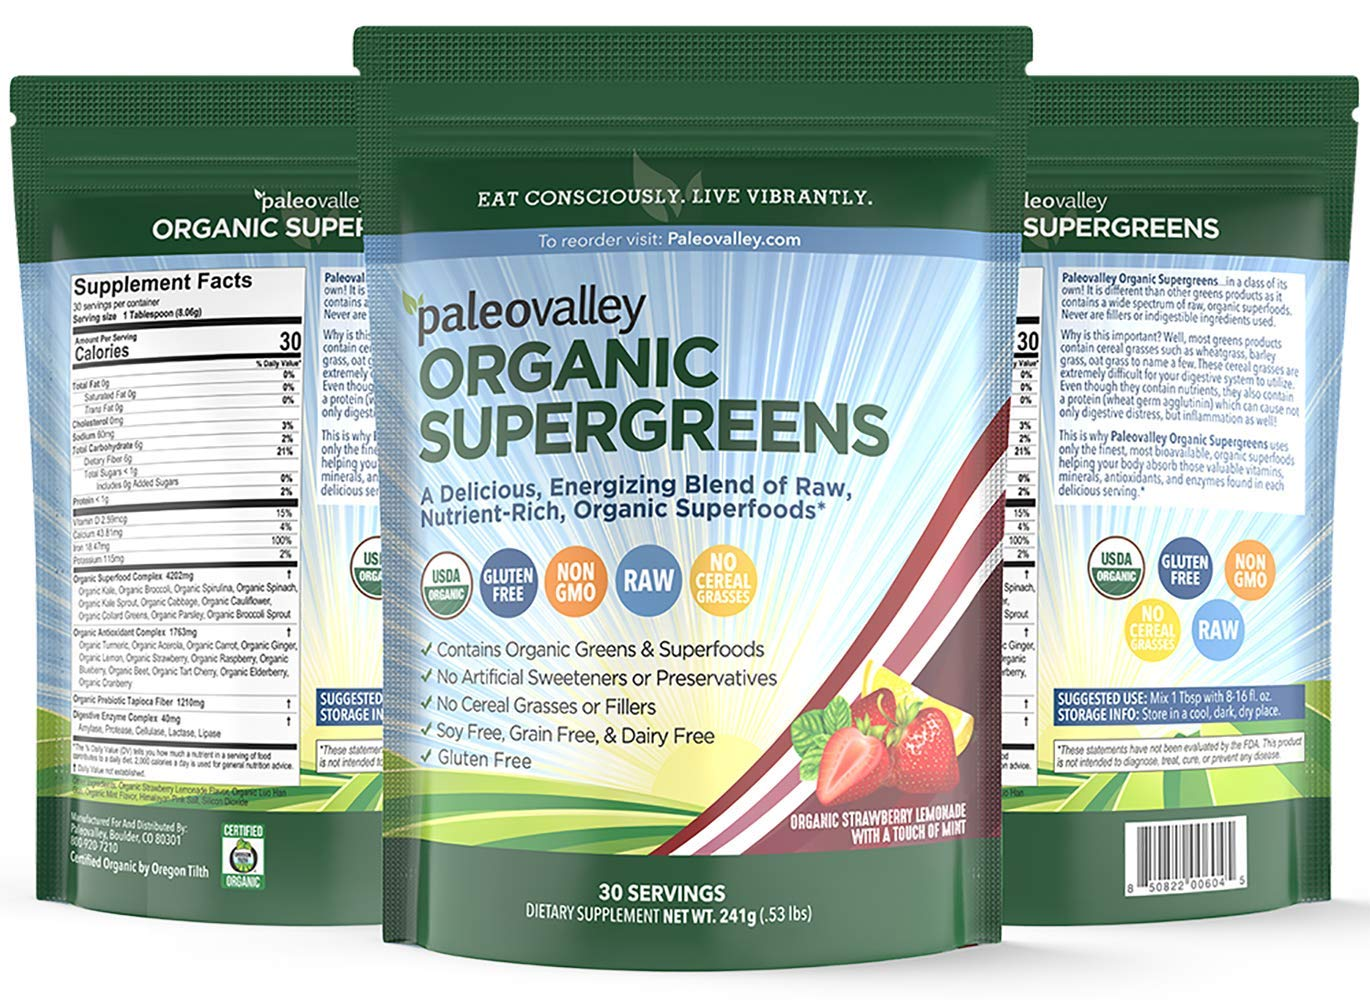 Paleovalley: Supergreens - Organic Green Superfood Powder - 30 Servings - Contains 23 Organic Superfoods, Free from Cereal Grasses, Gut Friendly